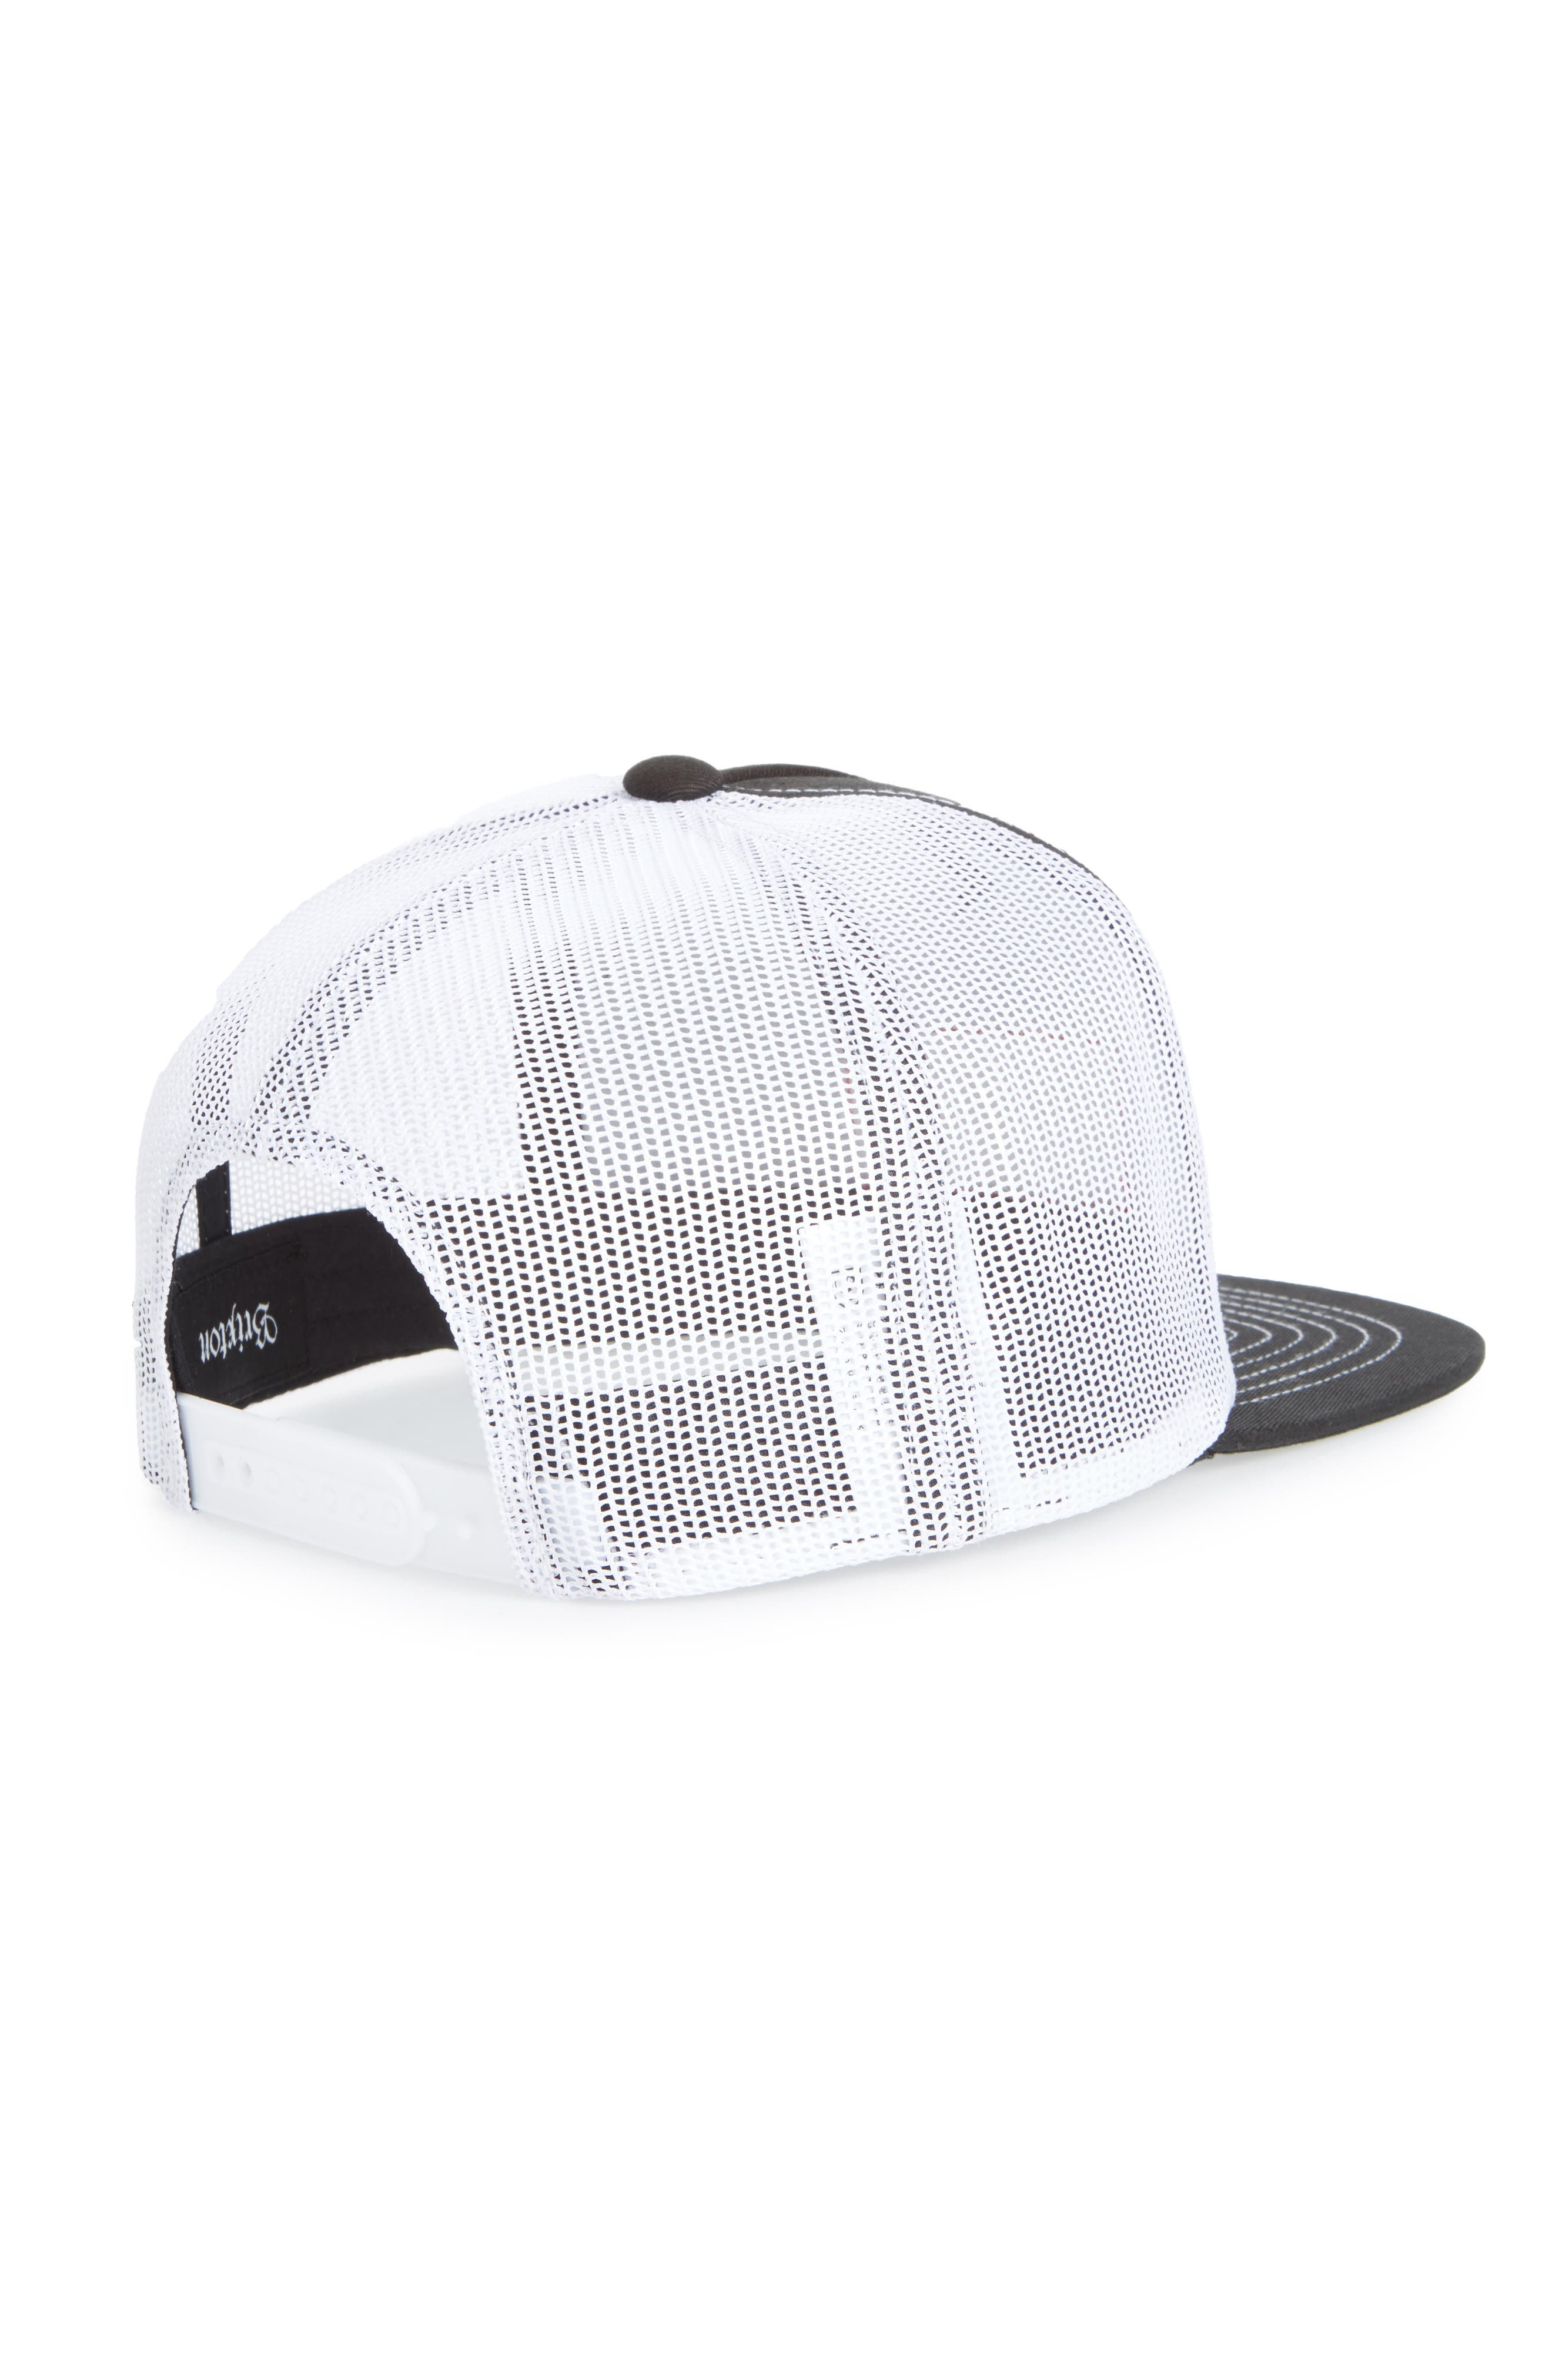 Langley Trucker Hat,                             Alternate thumbnail 2, color,                             Black/ White